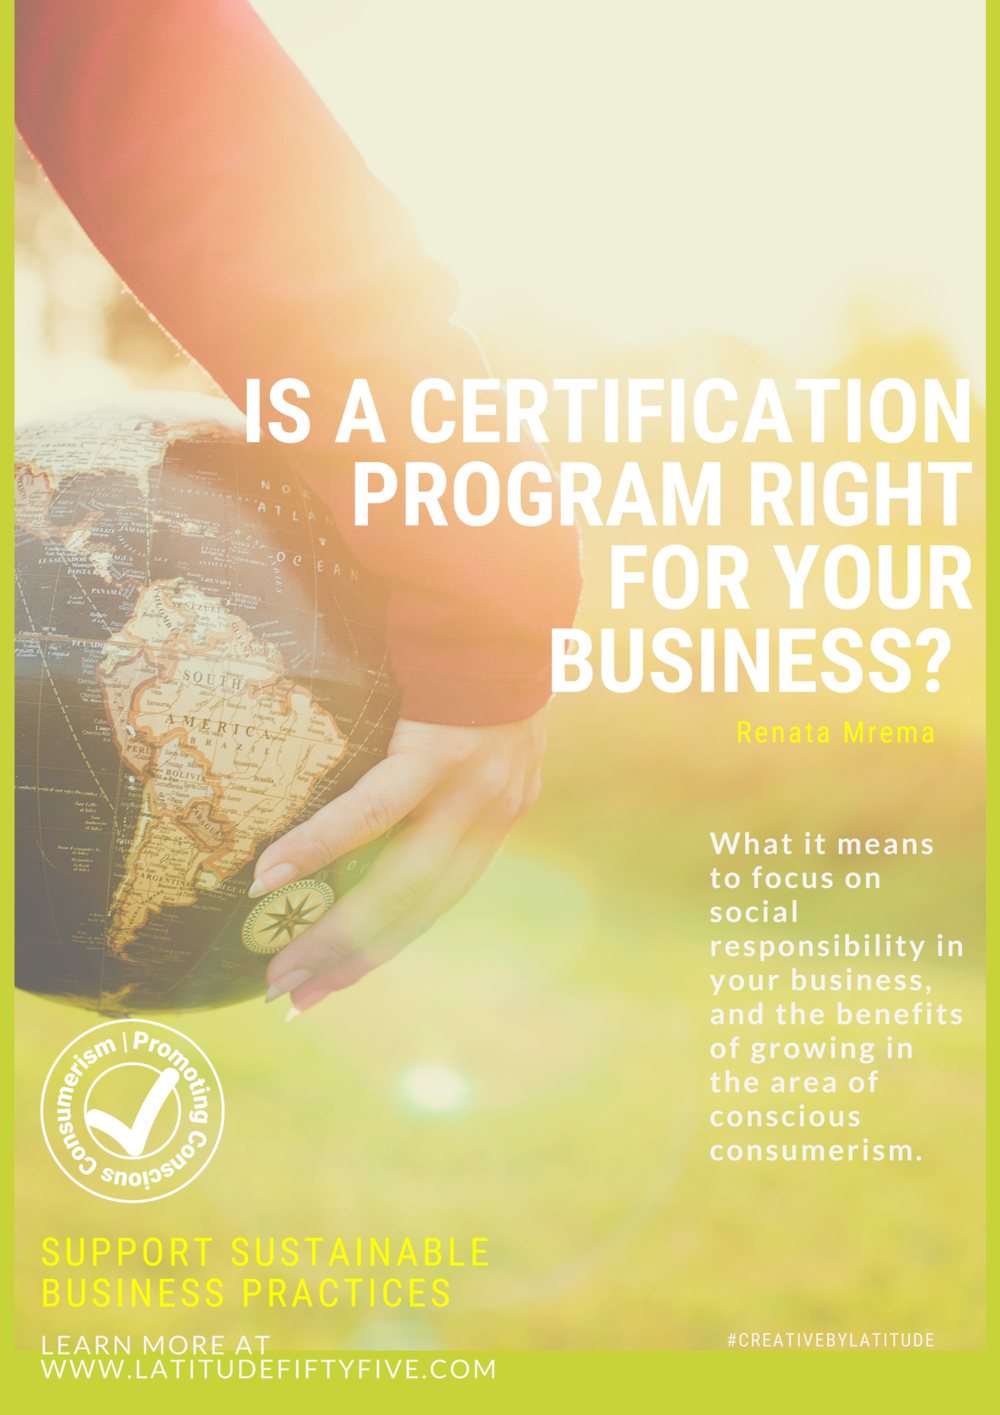 Certifications for sustainable business